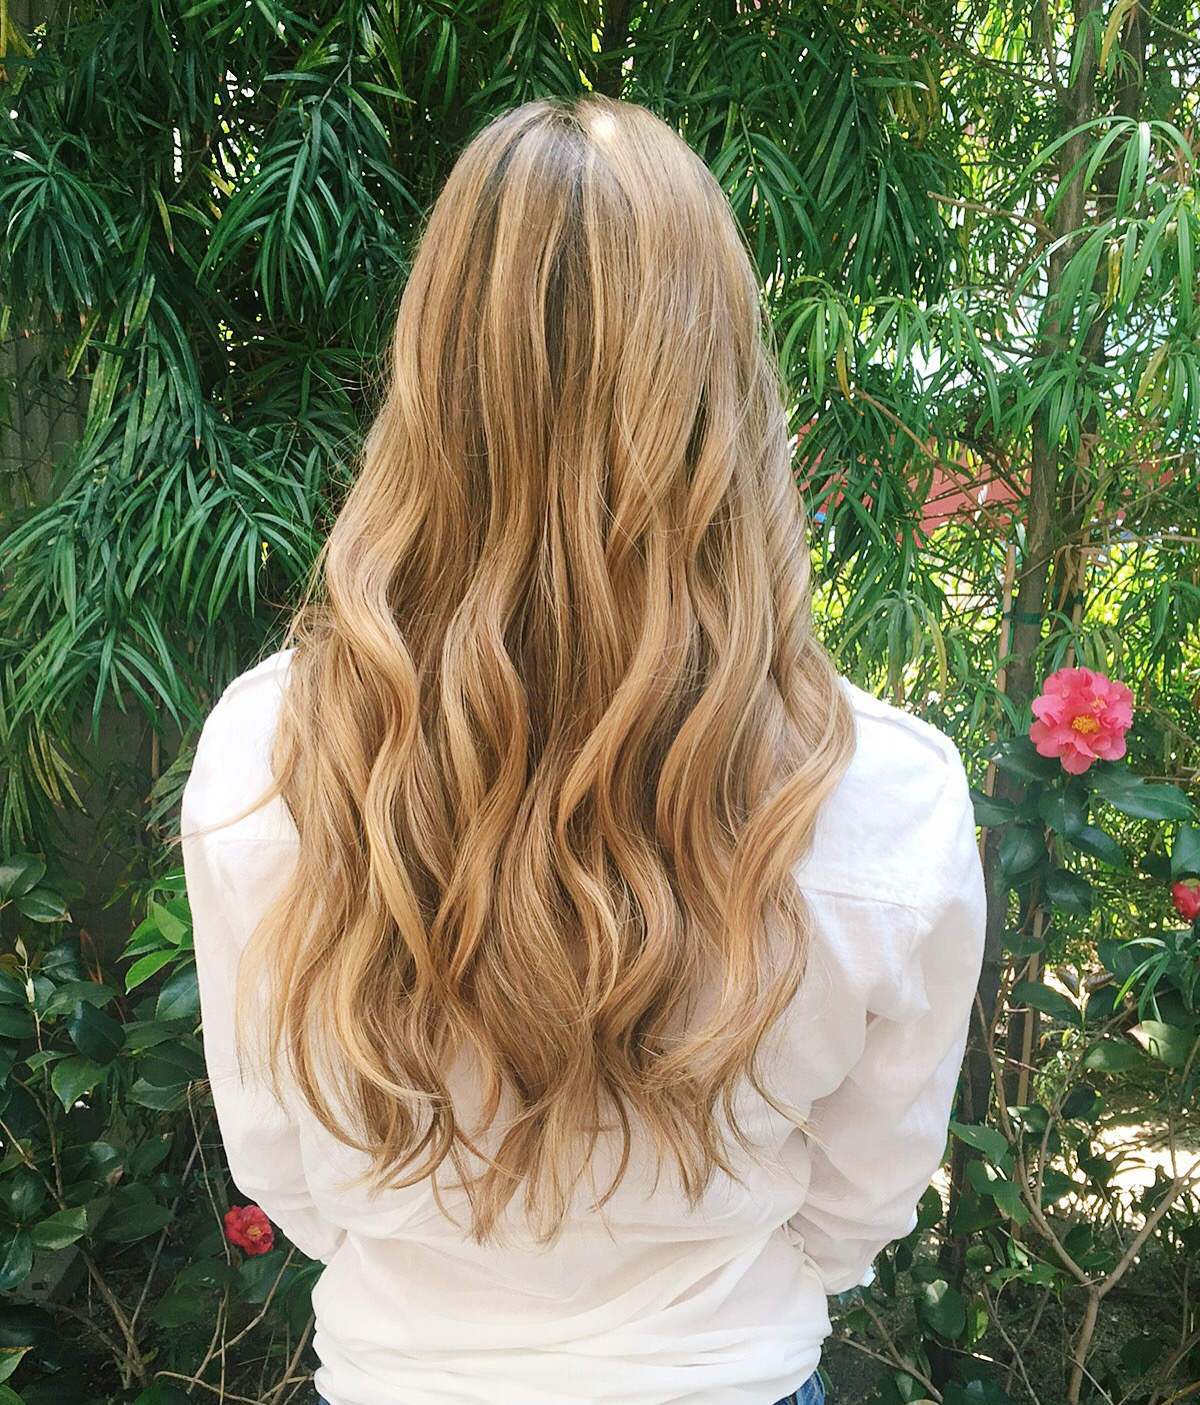 Healthy Blonde Hair Tips W Gia Sinatra The Strong Movement